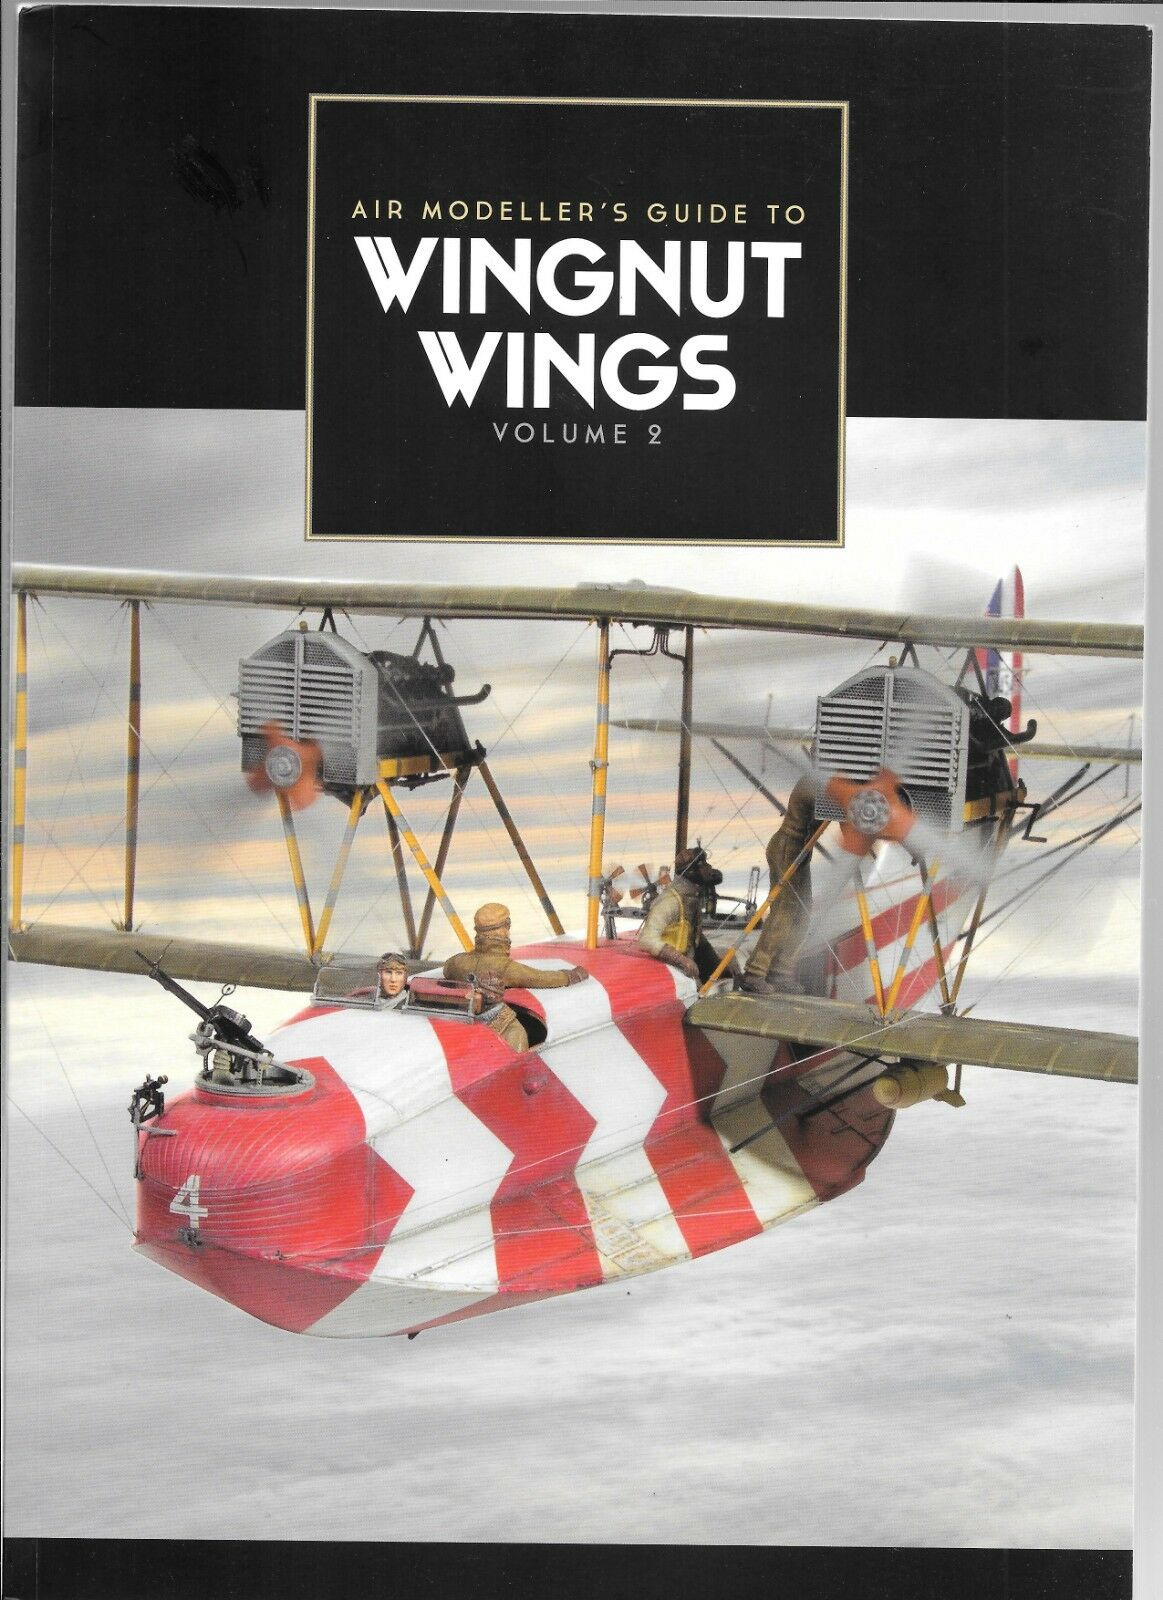 Air Modeller's Guide to WINGNUT WINGS VOL. 2, Softcover Reference NM - ST